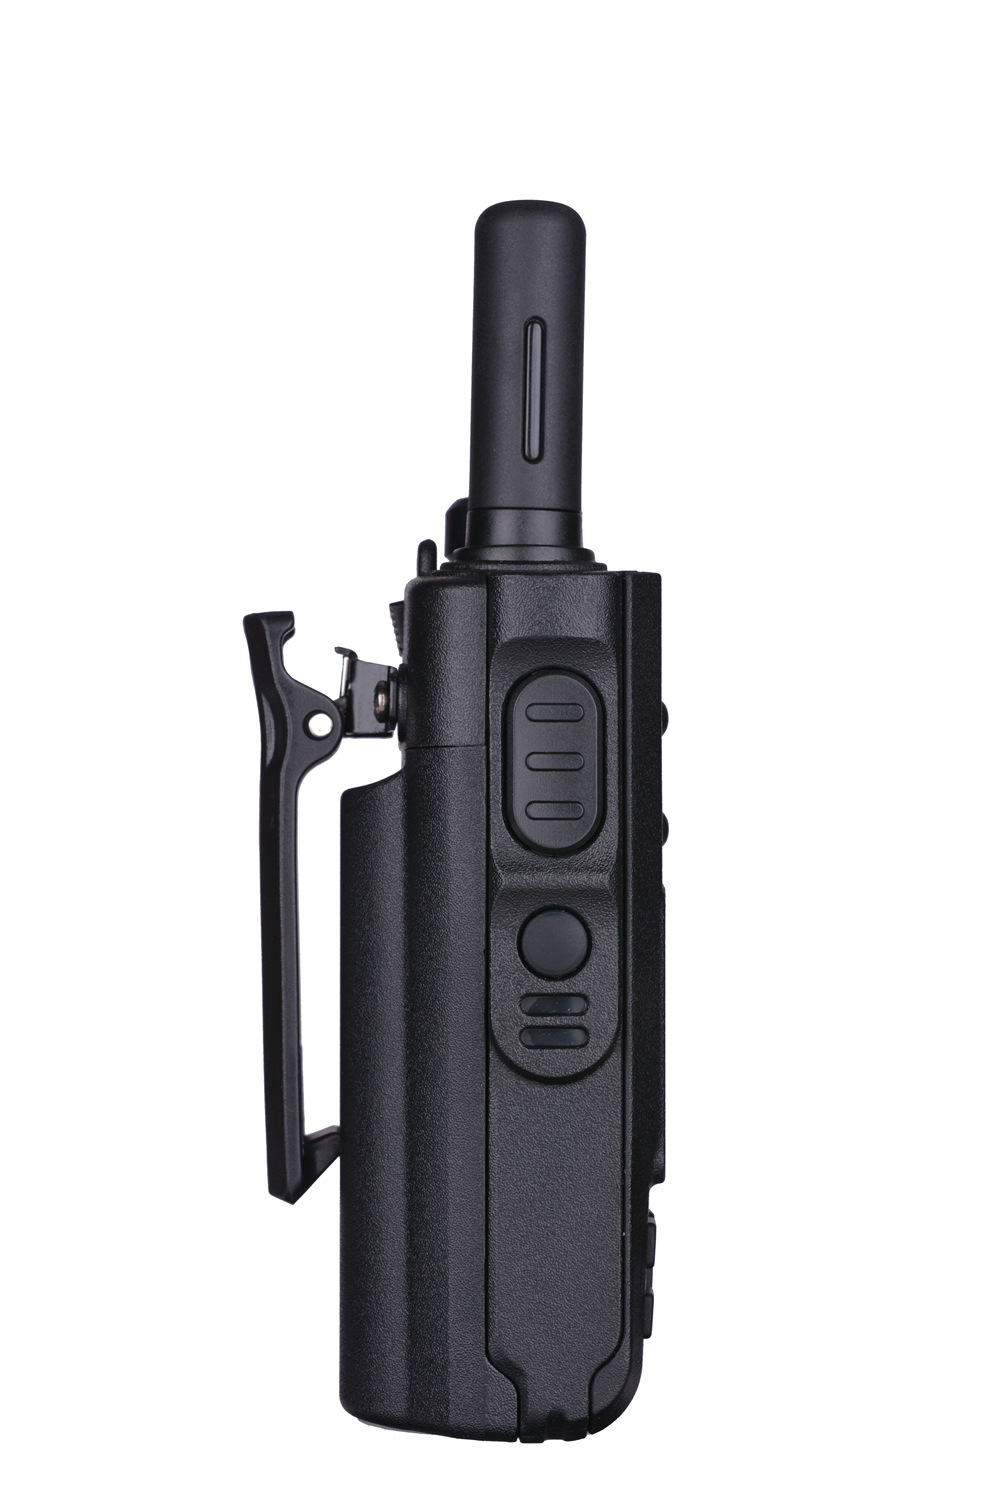 Global Berbicara 2G/3G/4G SIM Walkie Talkie POC Dua Cara Radio 4G Walkie talkie